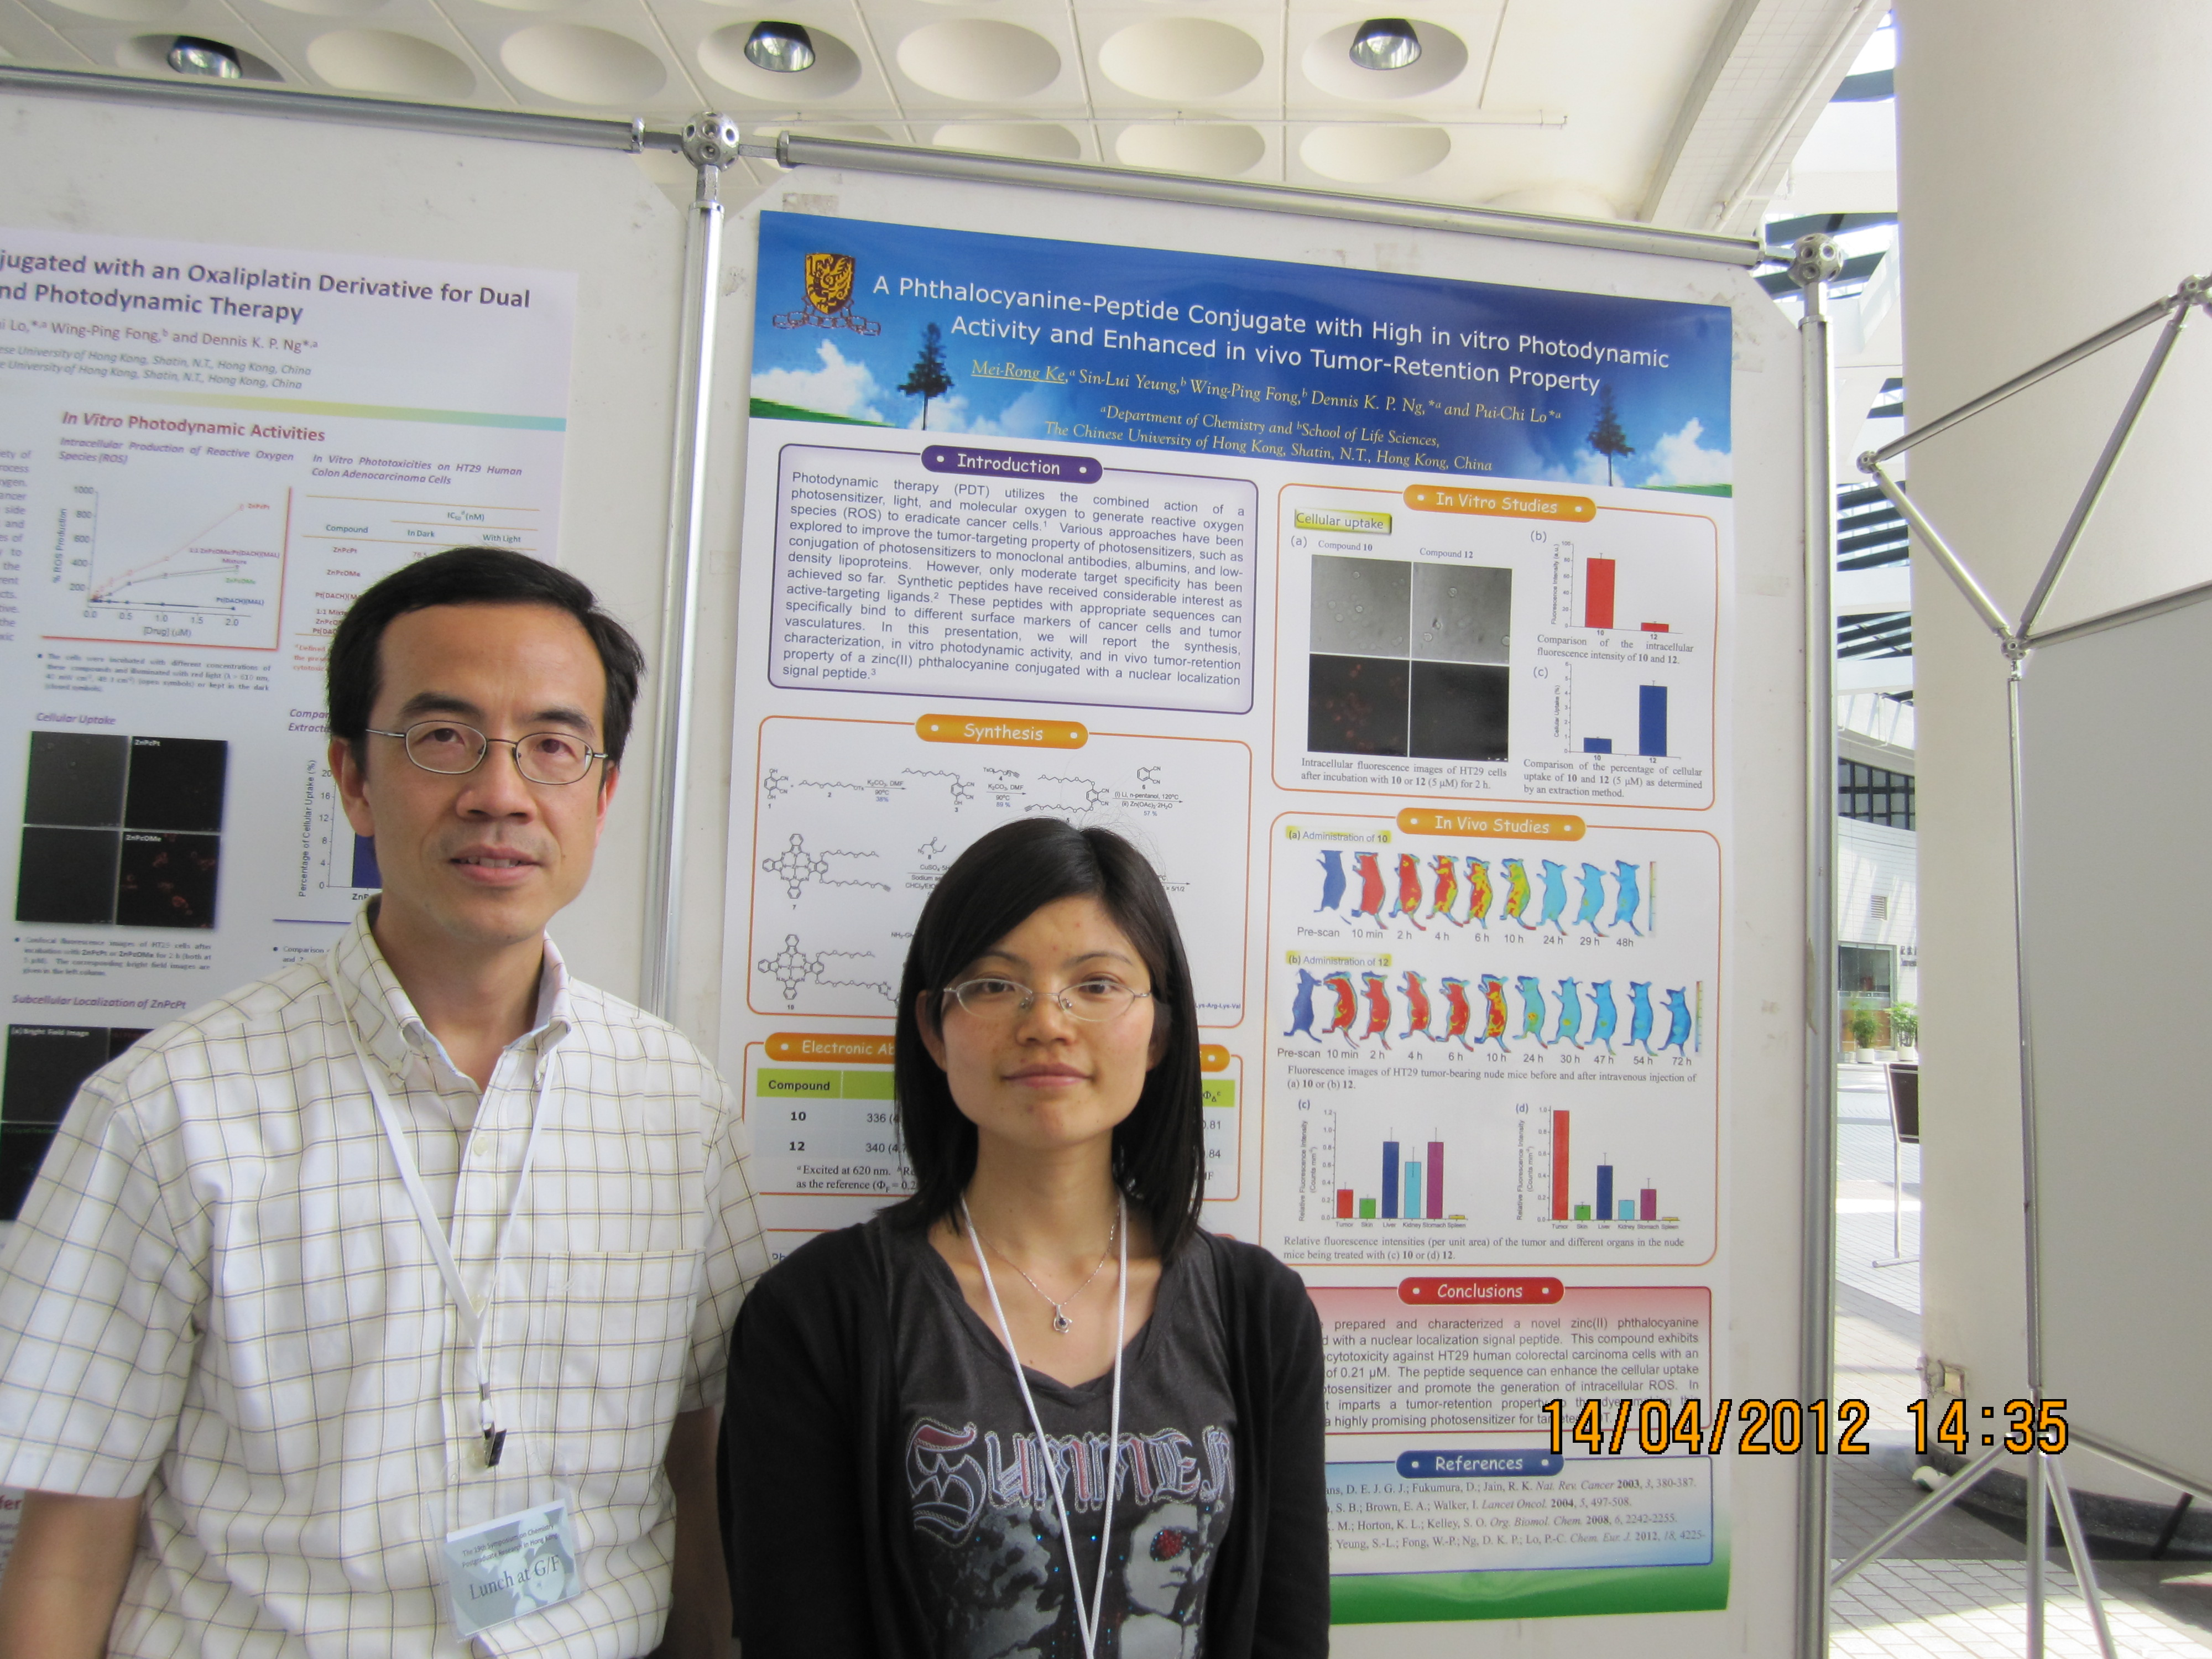 Photo of The Best Poster Award in Inorganic Chemistry: Prof. Dennis K. P. Ng and Ms. Ke Meirong